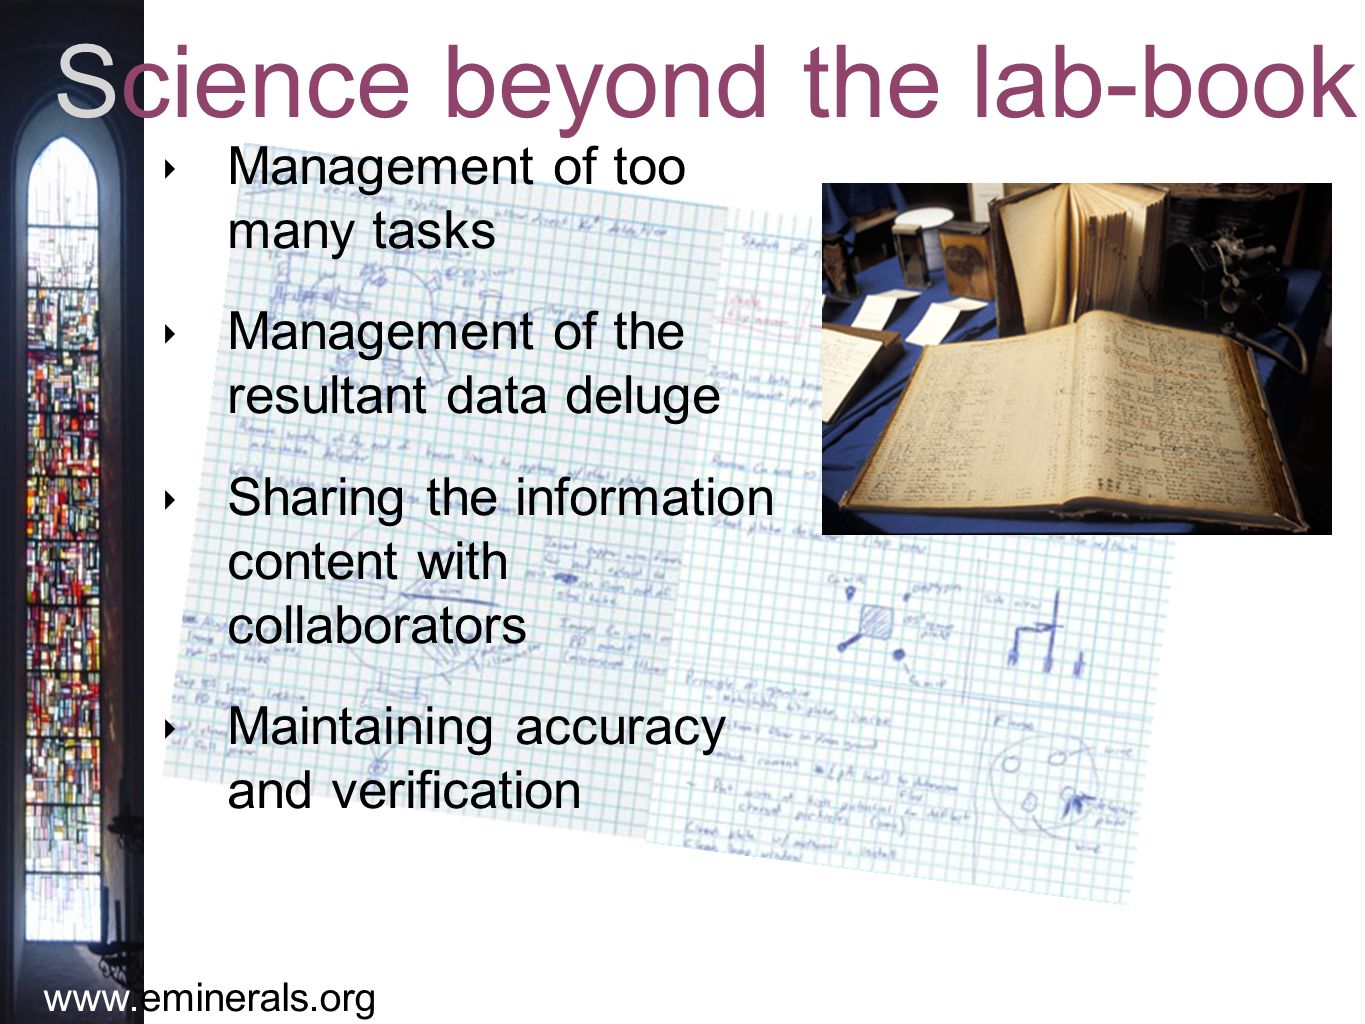 www.eminerals.org Science beyond the lab-book ‣ Management of too many tasks ‣ Management of the resultant data deluge ‣ Sharing the information content with collaborators ‣ Maintaining accuracy and verification